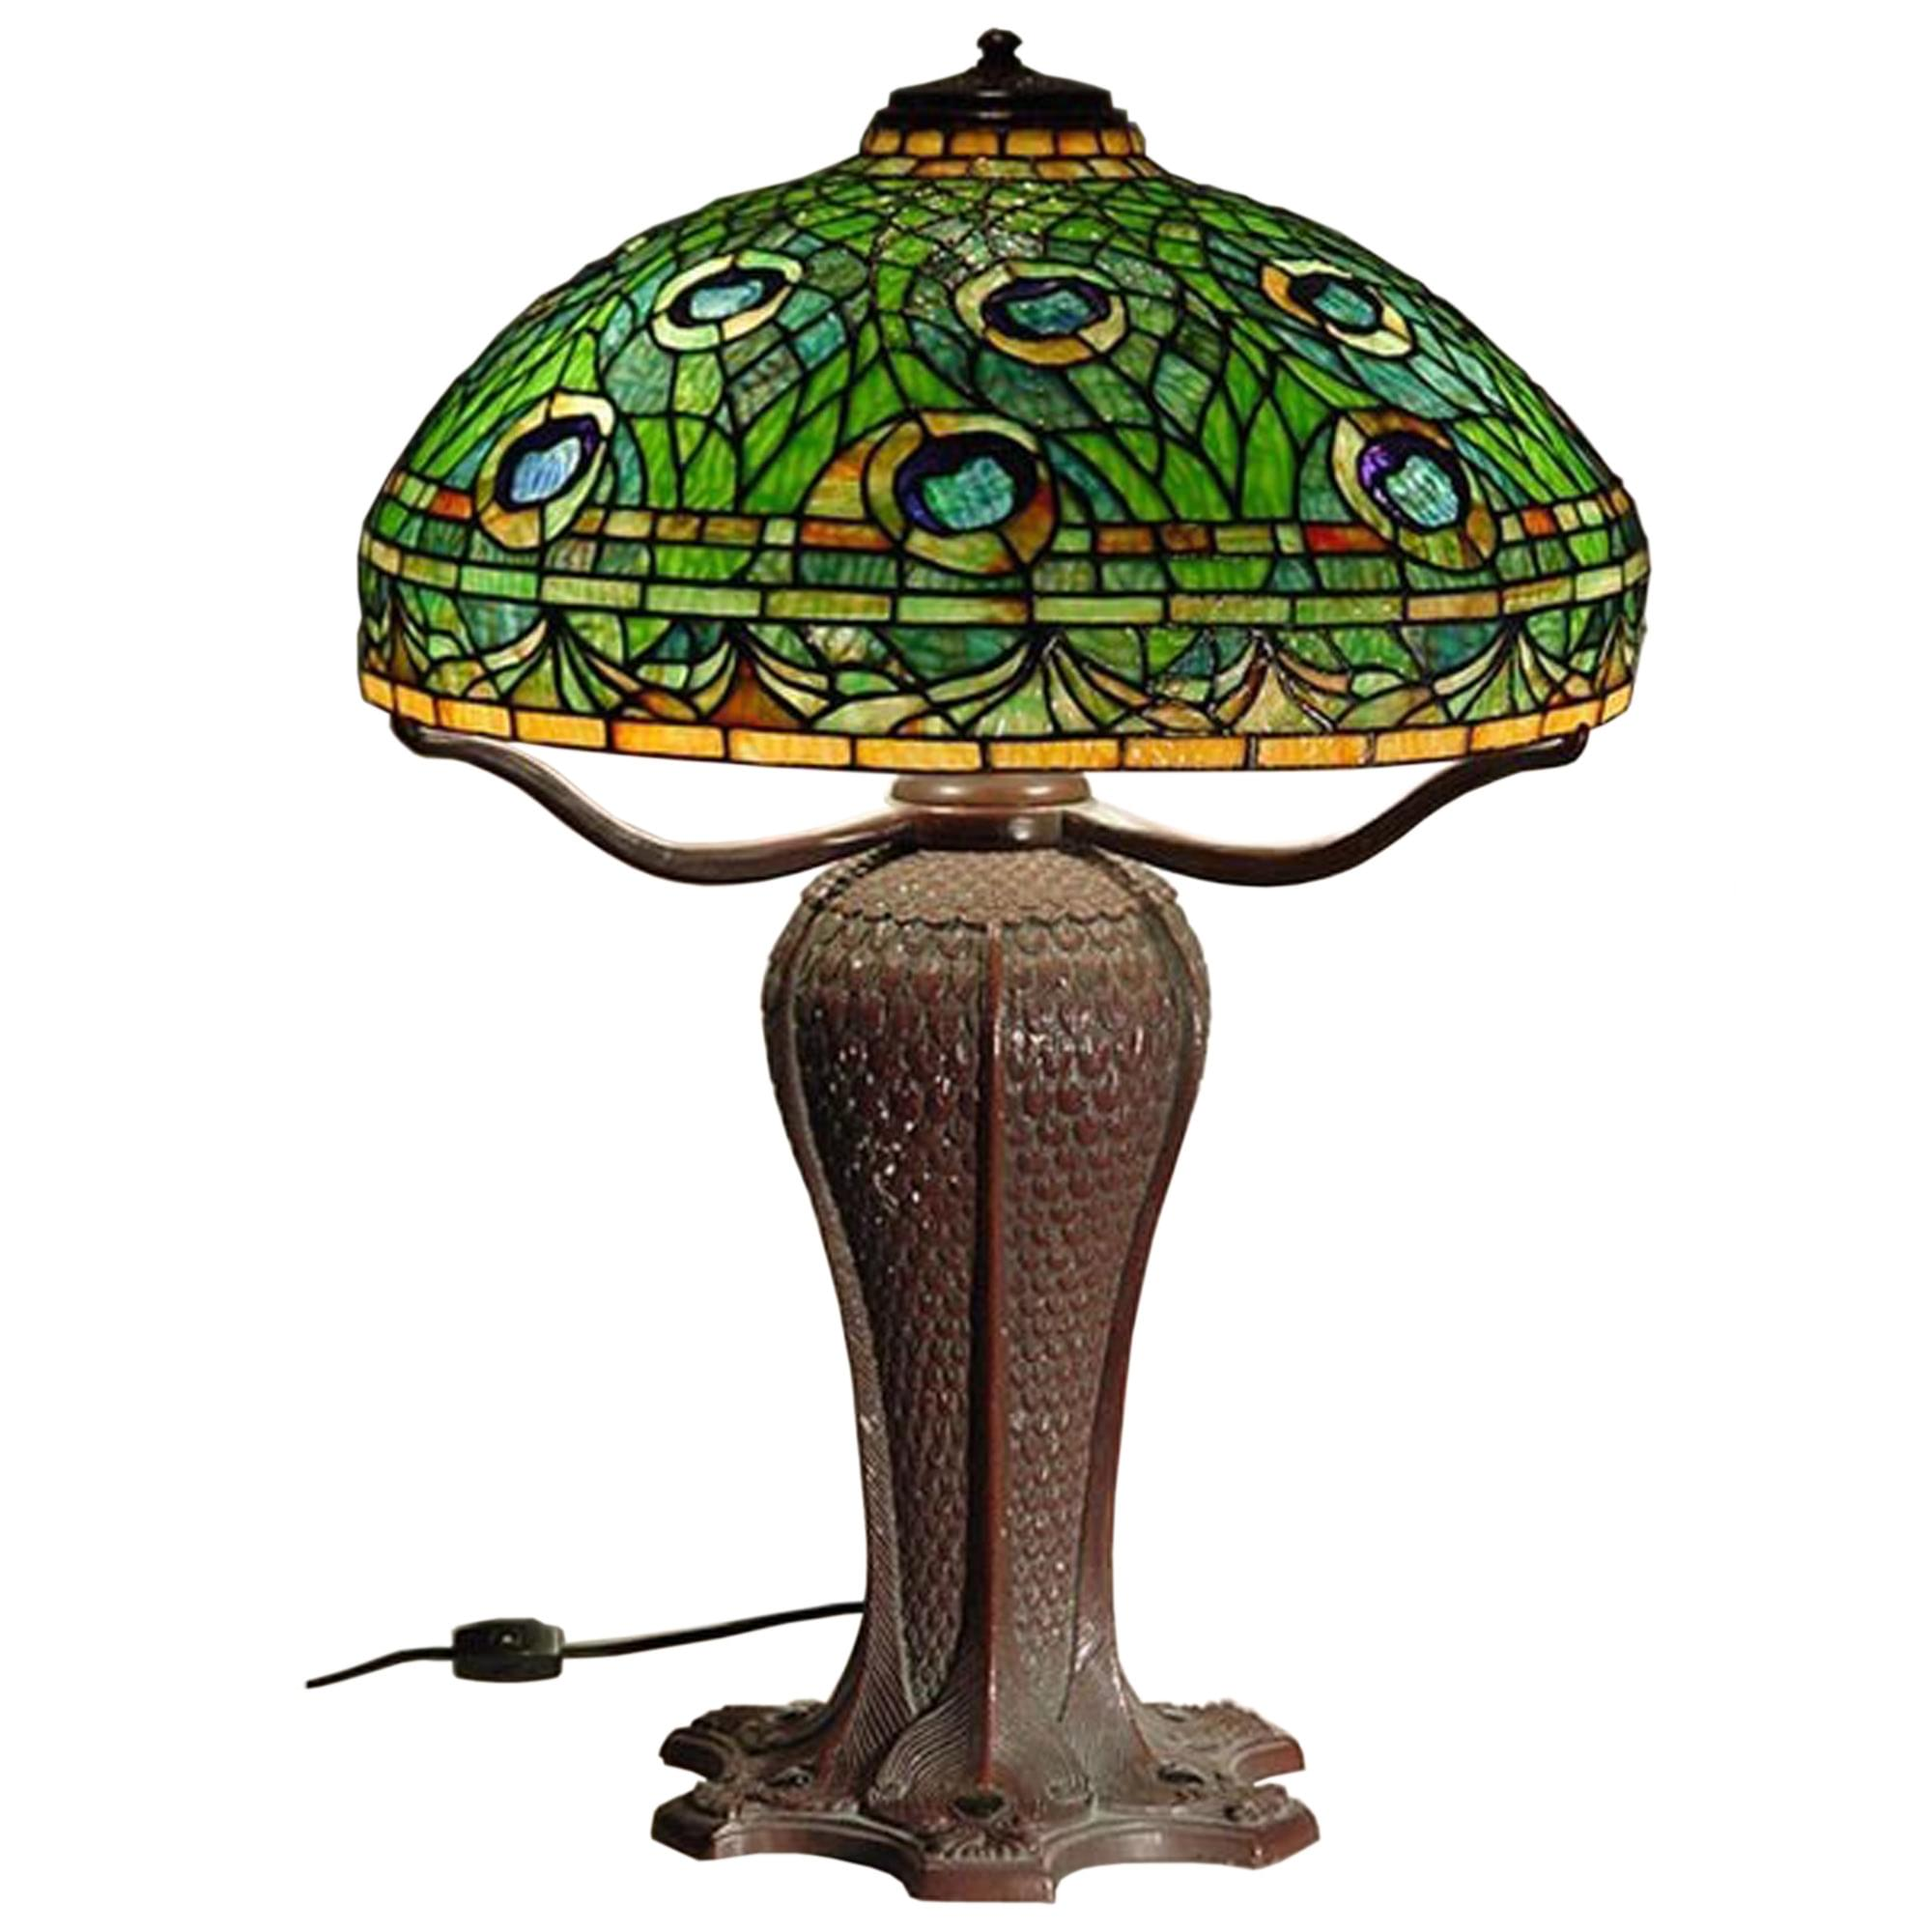 Details about Tiffany Baroque Design Semi Flush Ceiling Light Peacock Stained Glass Chandelier